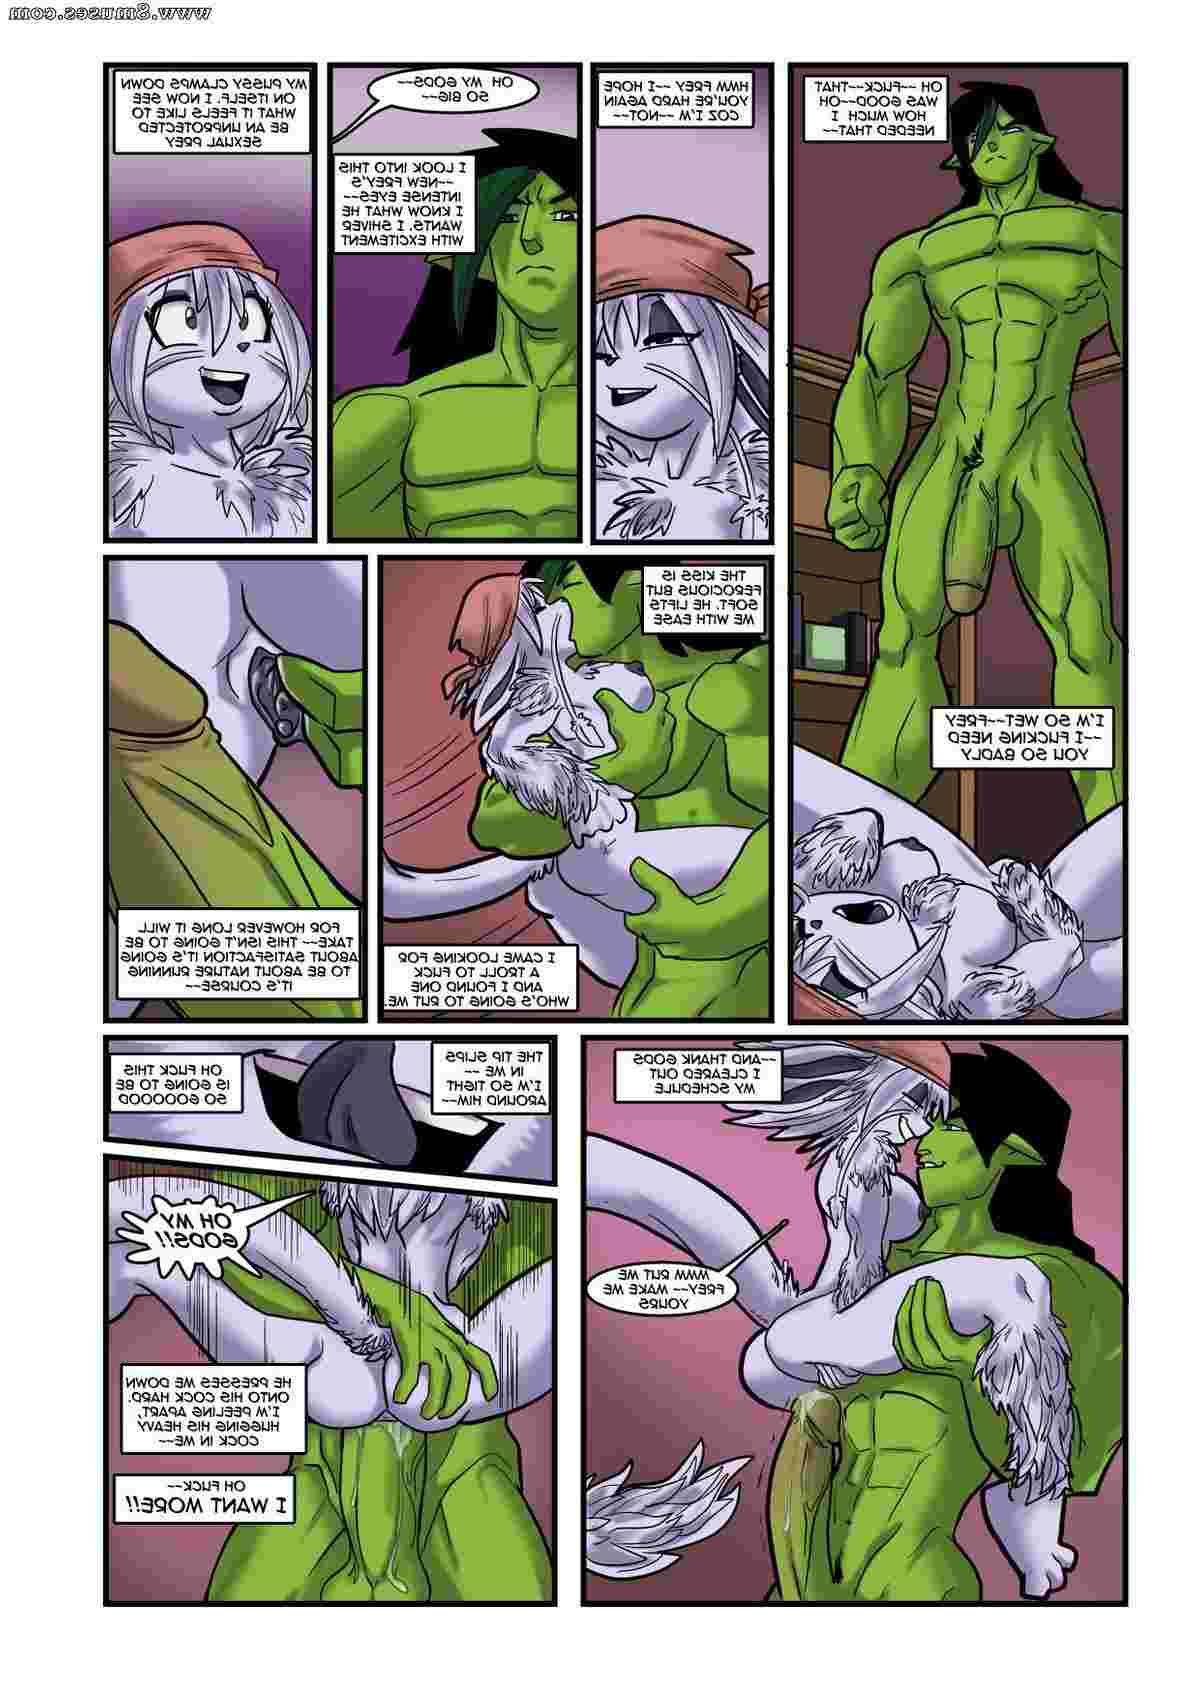 JohnPersons_com-Comics/Rabies/On-The-Search-For-Trolls On_The_Search_For_Trolls__8muses_-_Sex_and_Porn_Comics_5.jpg